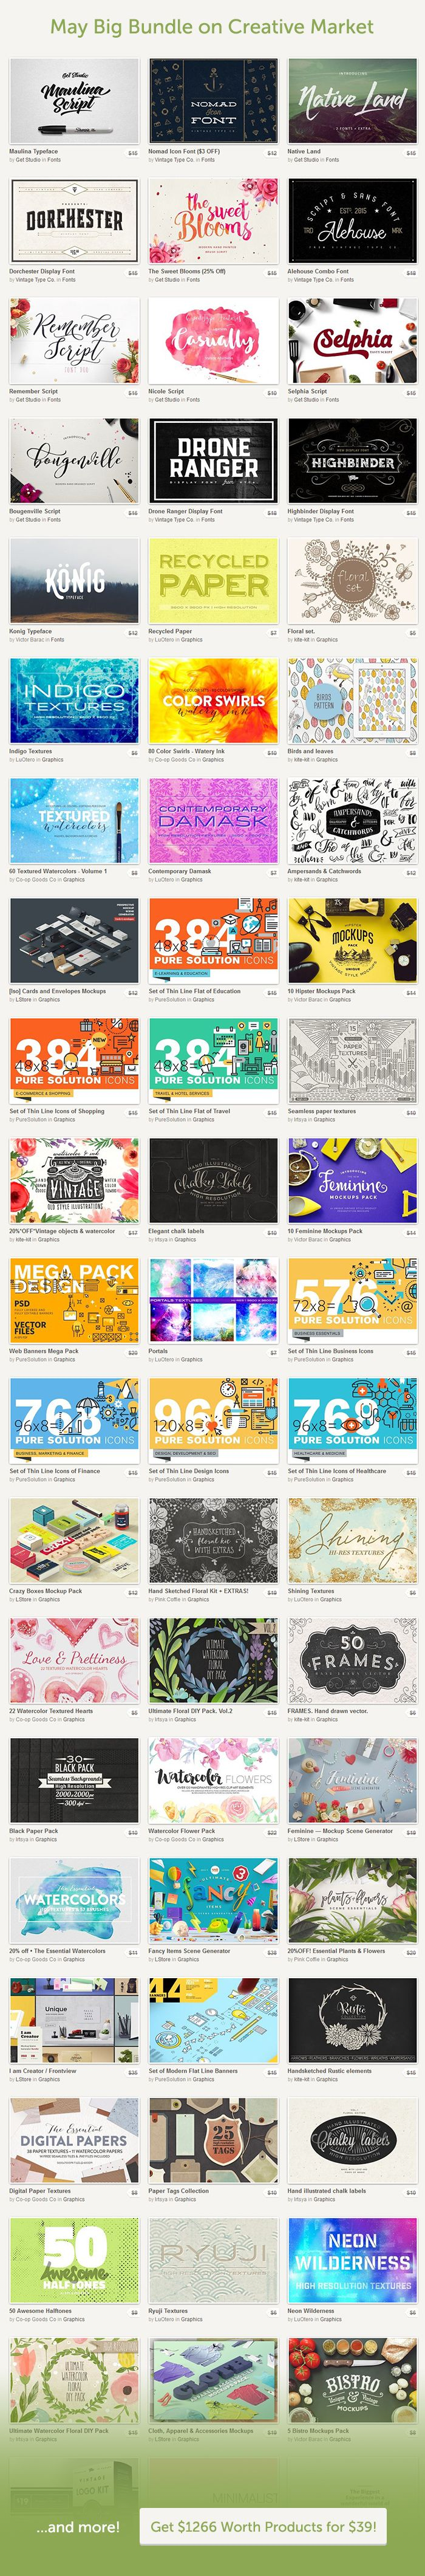 https://creativemarket.com/bundle/may-big-bundle-2016?u=friskweb